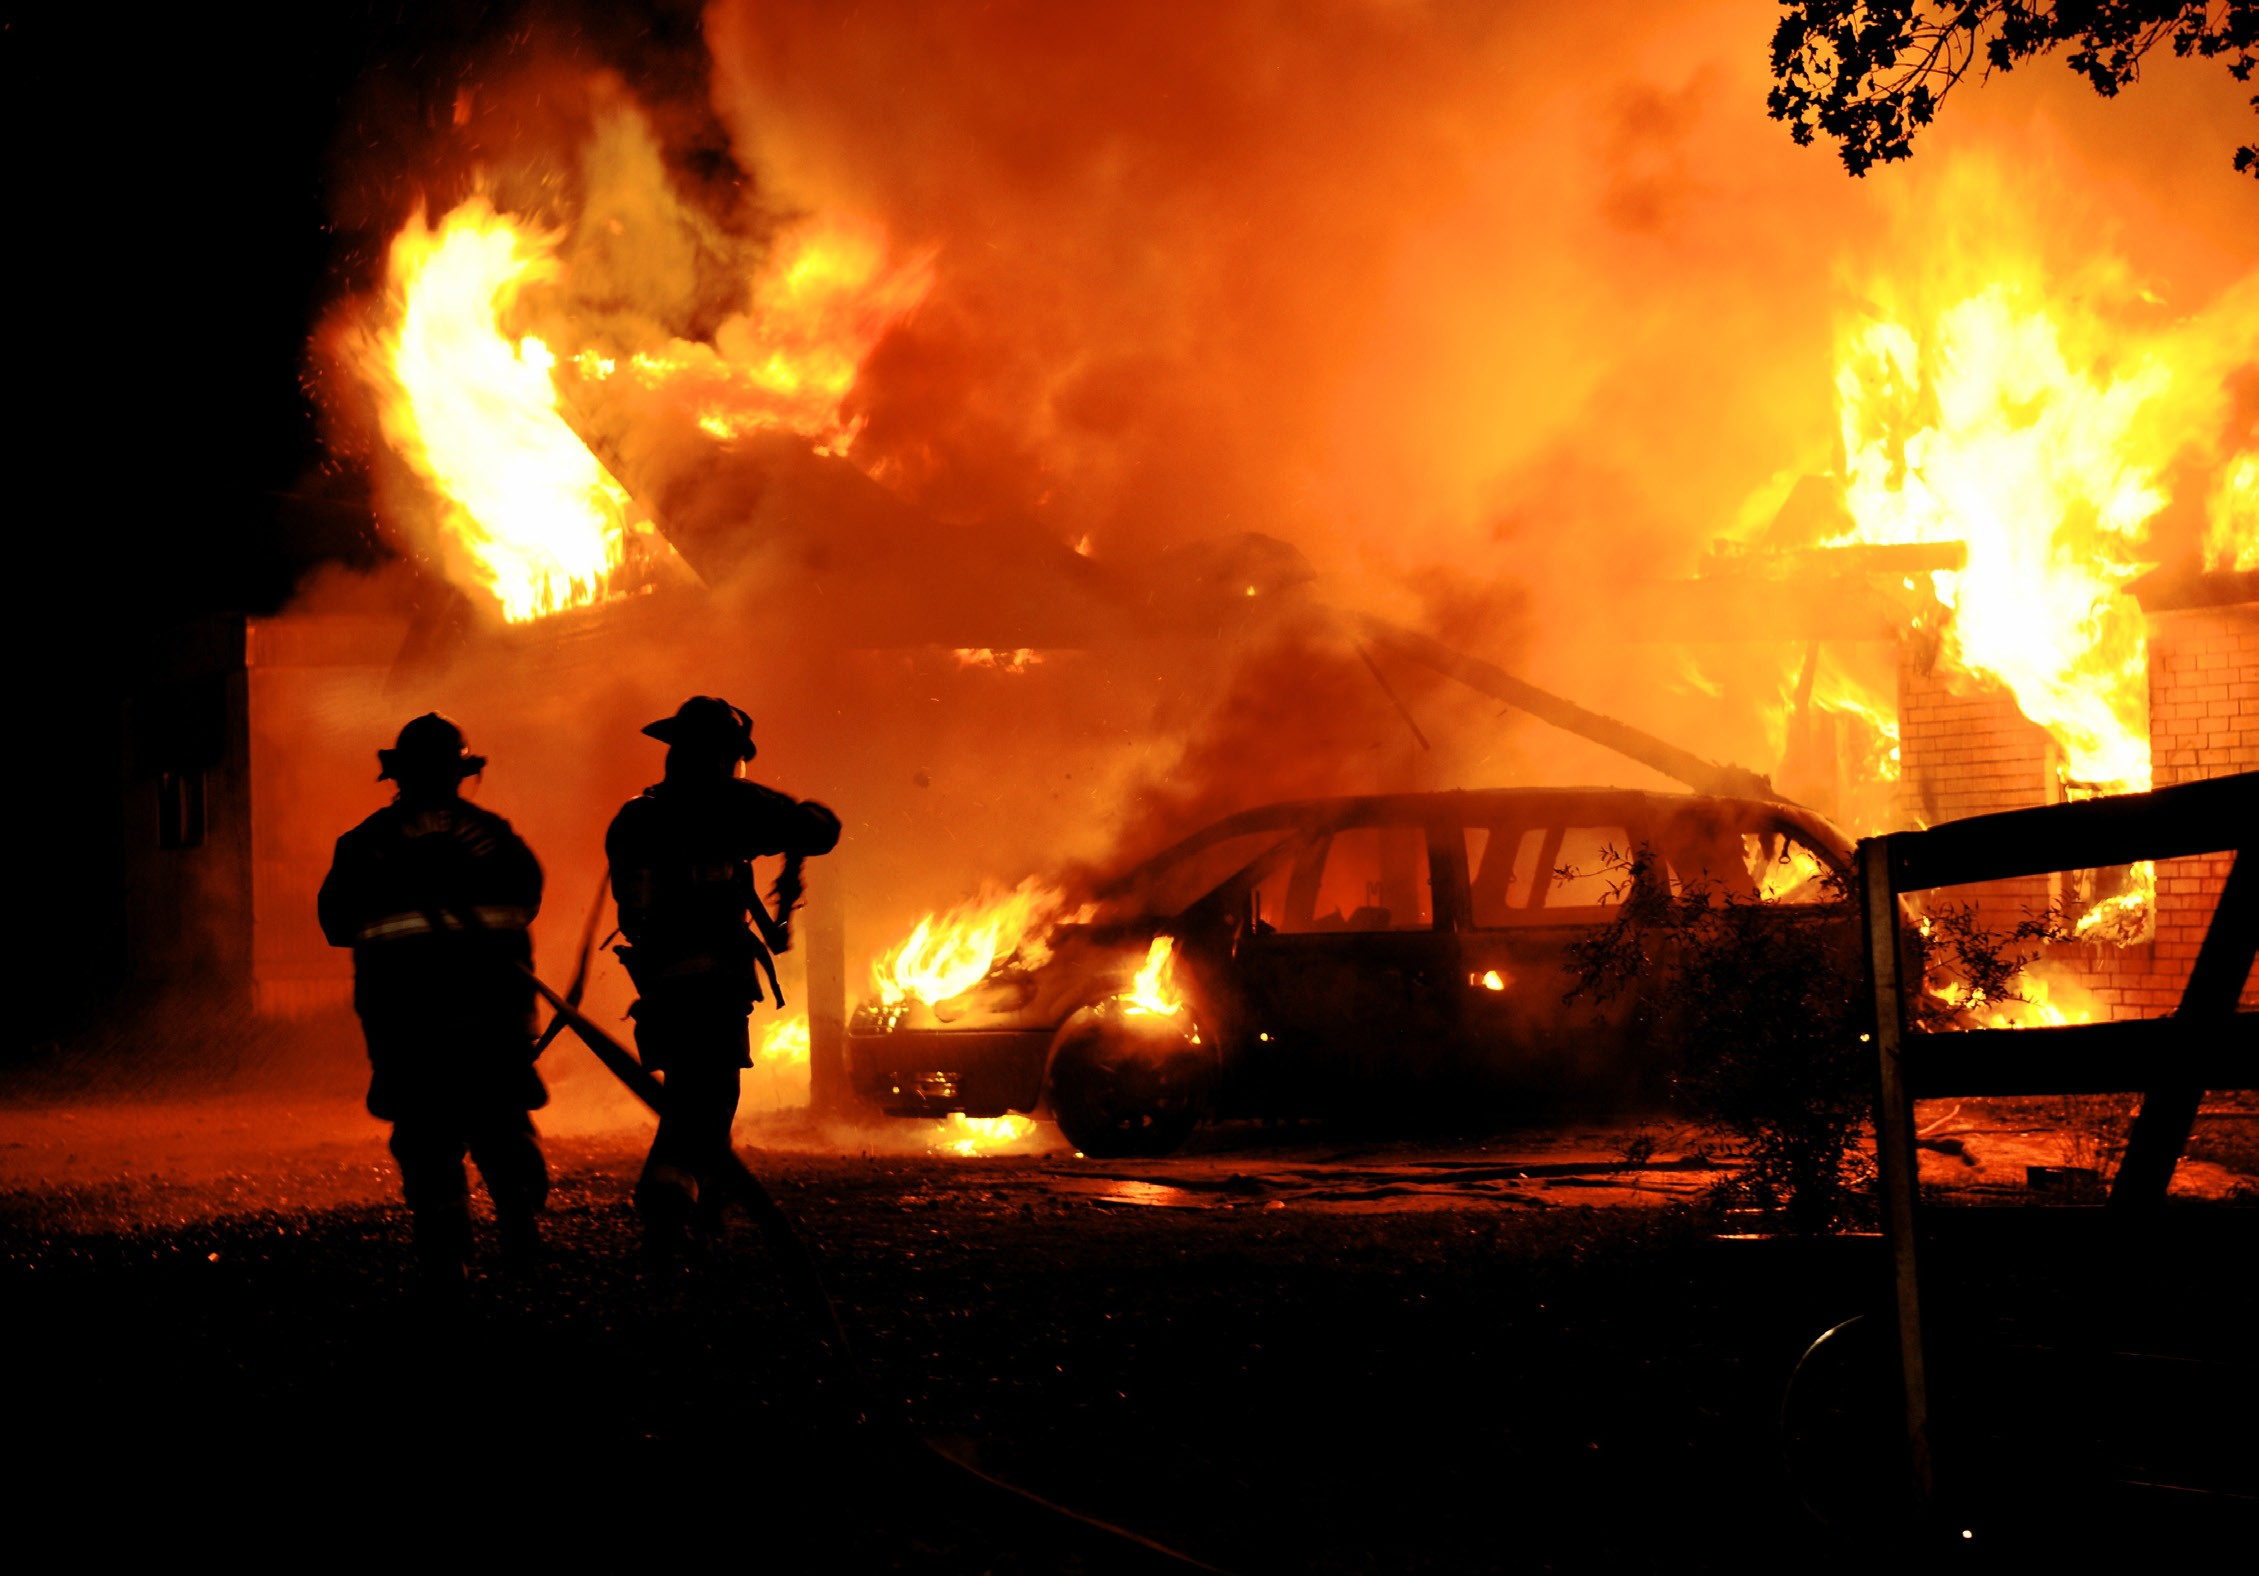 A fire incinerated a vehicle and home on Waycross Road off Old Pleasanton Road in north Atascosa County around midnight on Sunday. Ata-Bexar, Leming, Pleasanton, and Poteet volunteer fire departments responded. No one was injured.